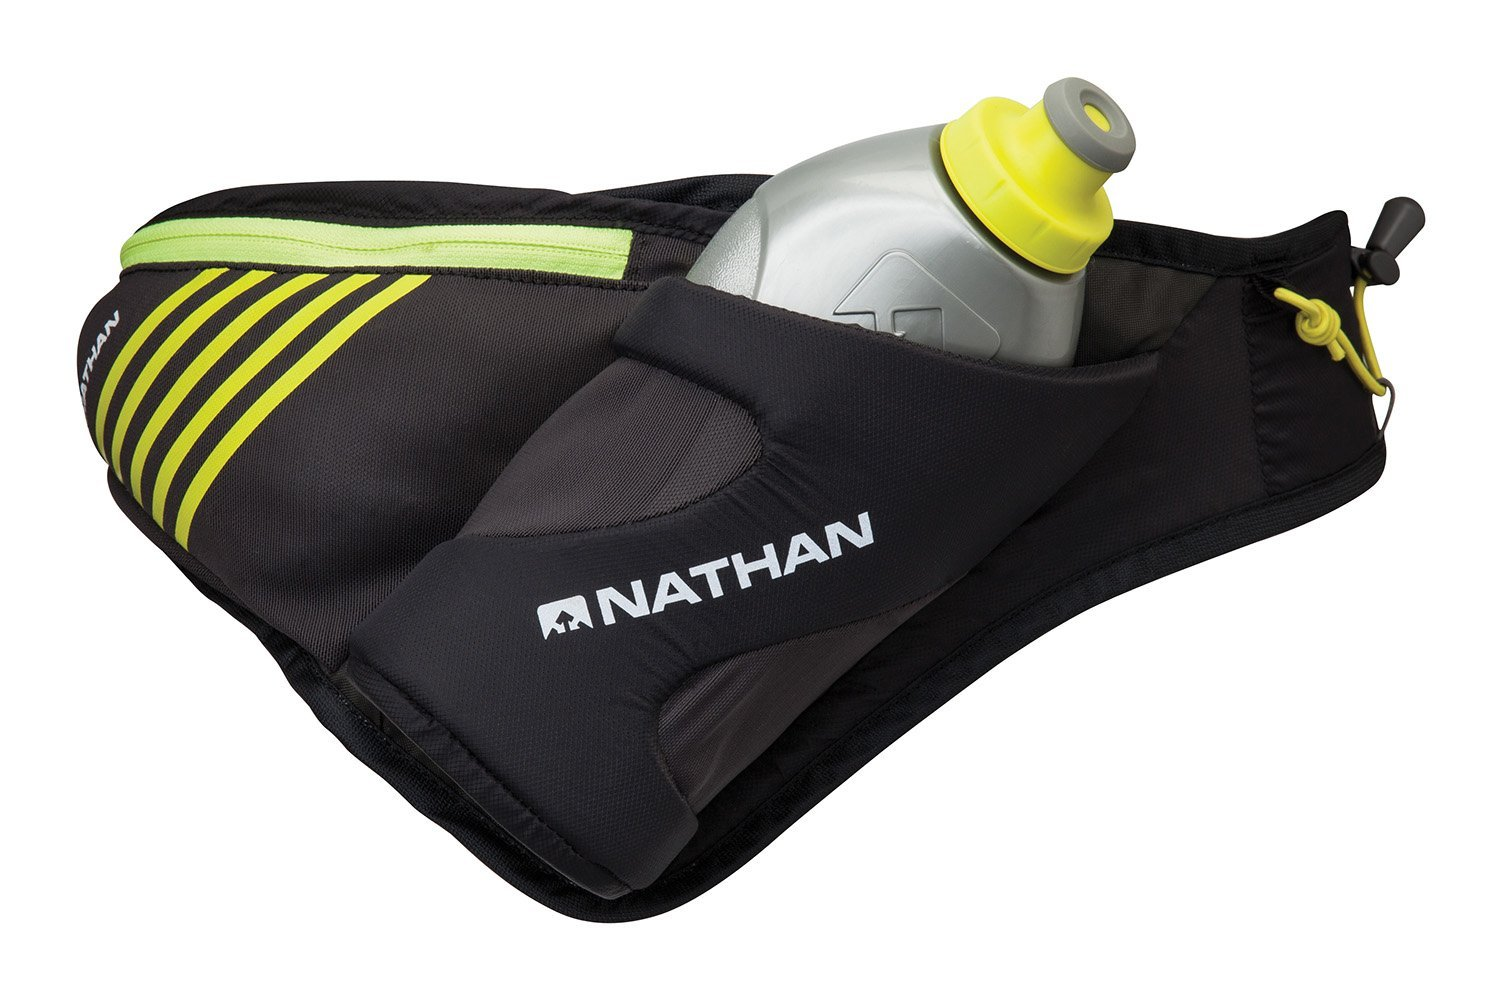 Nathan Peak Hydration Waist Pack with Storage Area & Run Flask 18oz – Running, Hiking, Camping, Cycling by Nathan (Image #1)